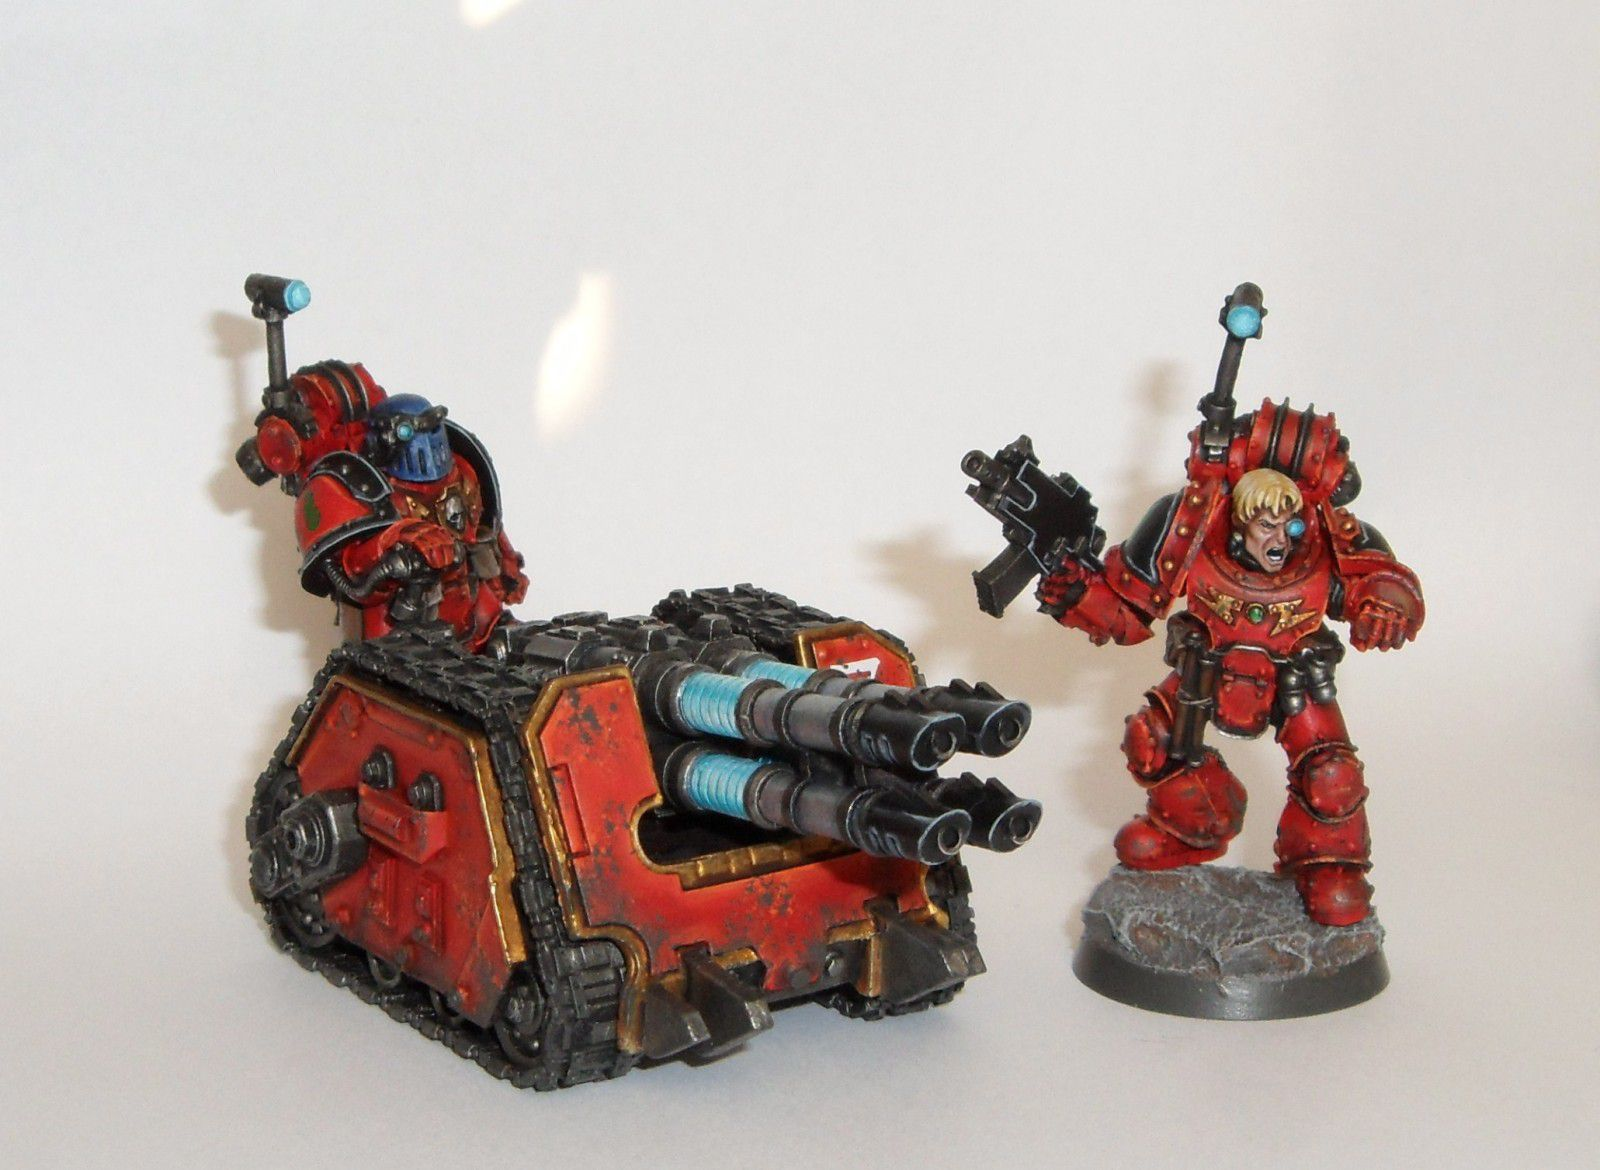 [IX] Par le sang de Sanguinius. Armée Blood Angels 30K. SAM_2238